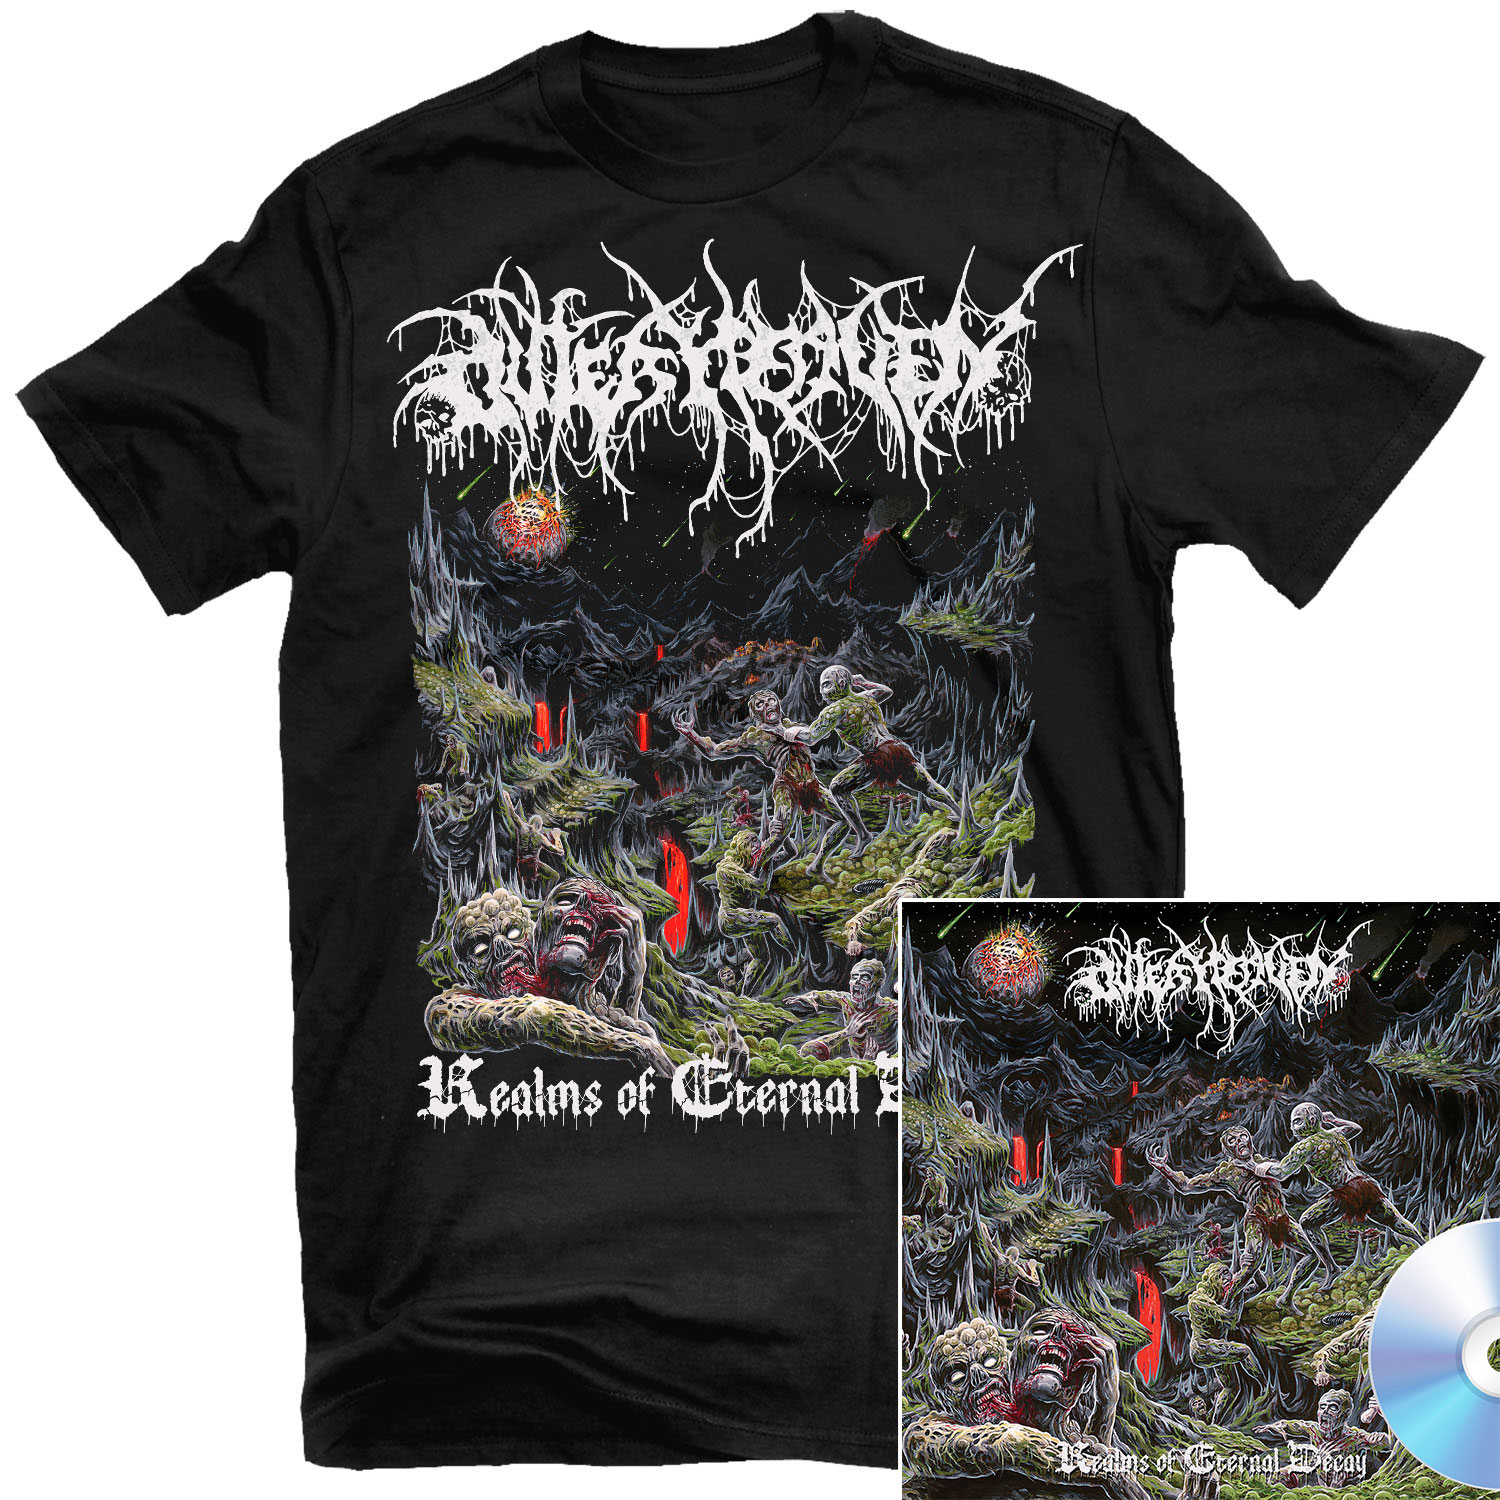 Realms Of Eternal Decay T Shirt + CD Bundle